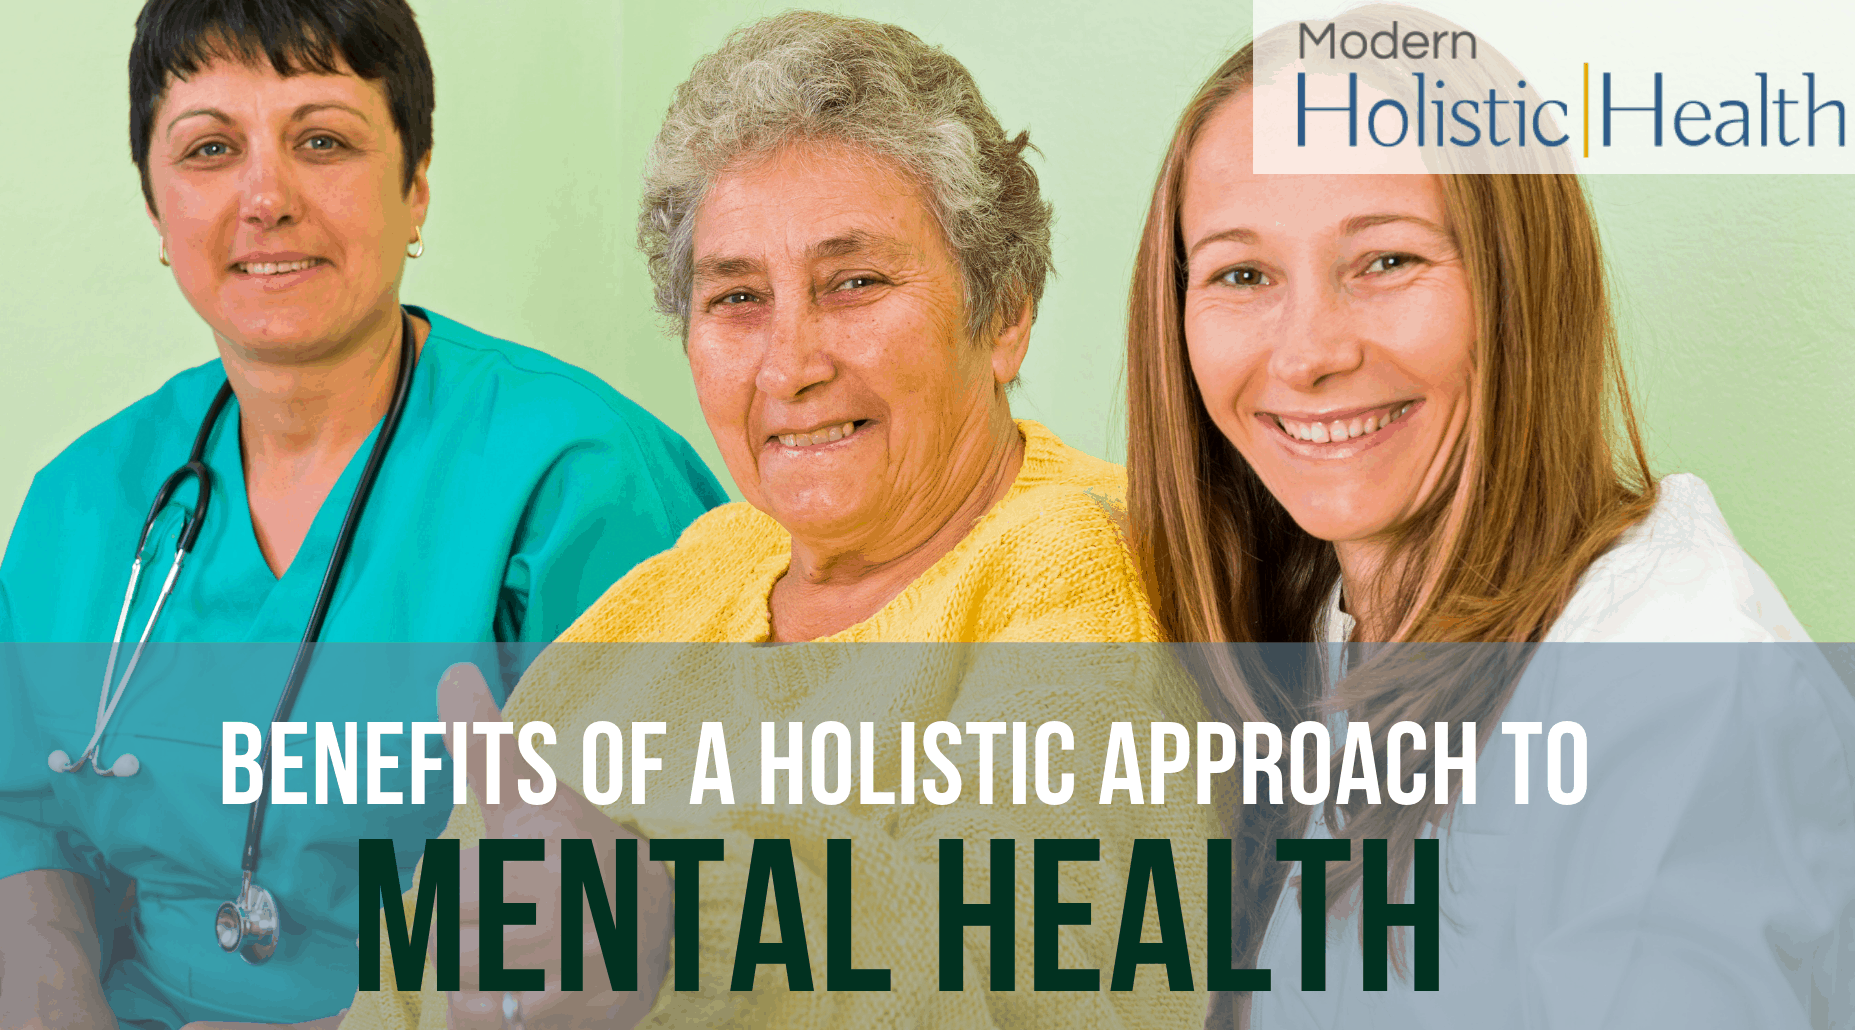 Benefits of a Holistic Approach to Mental Health